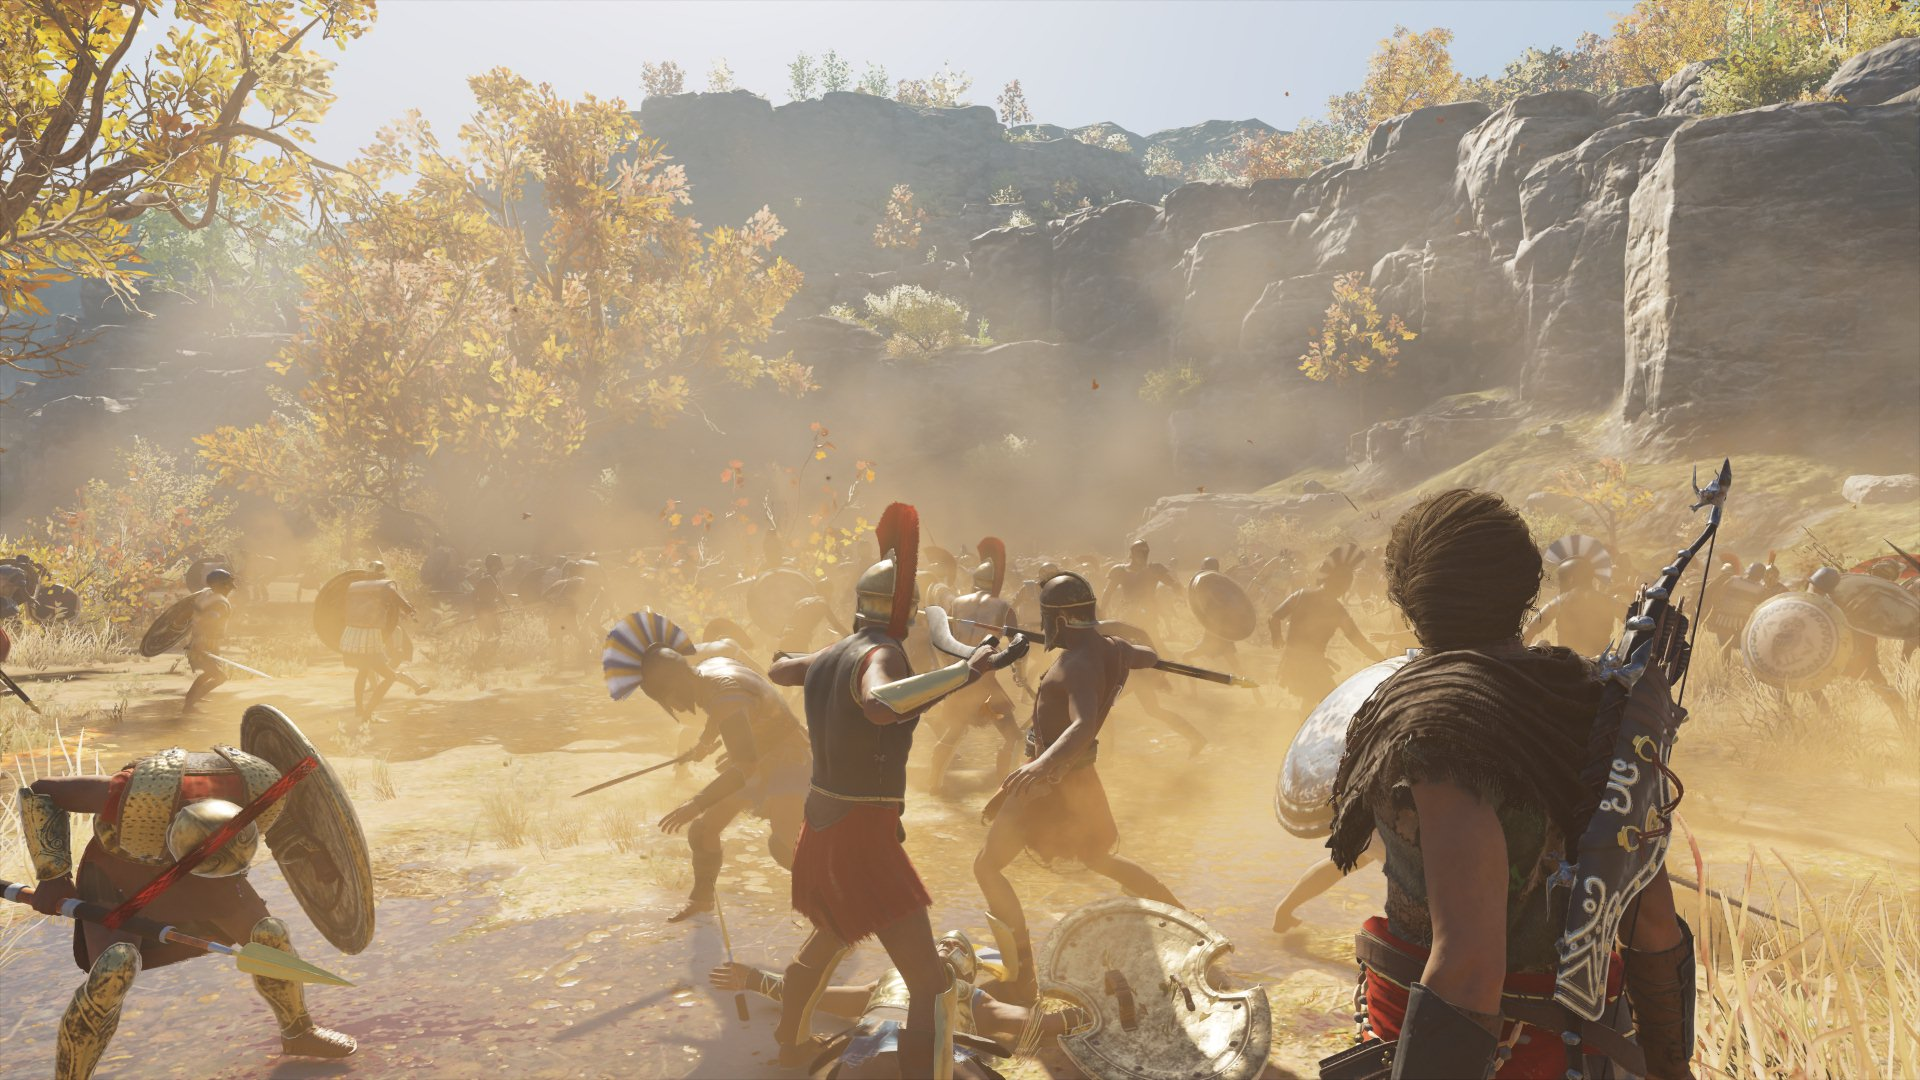 Assassin's Creed Odyssey falls far short of its own wondrous